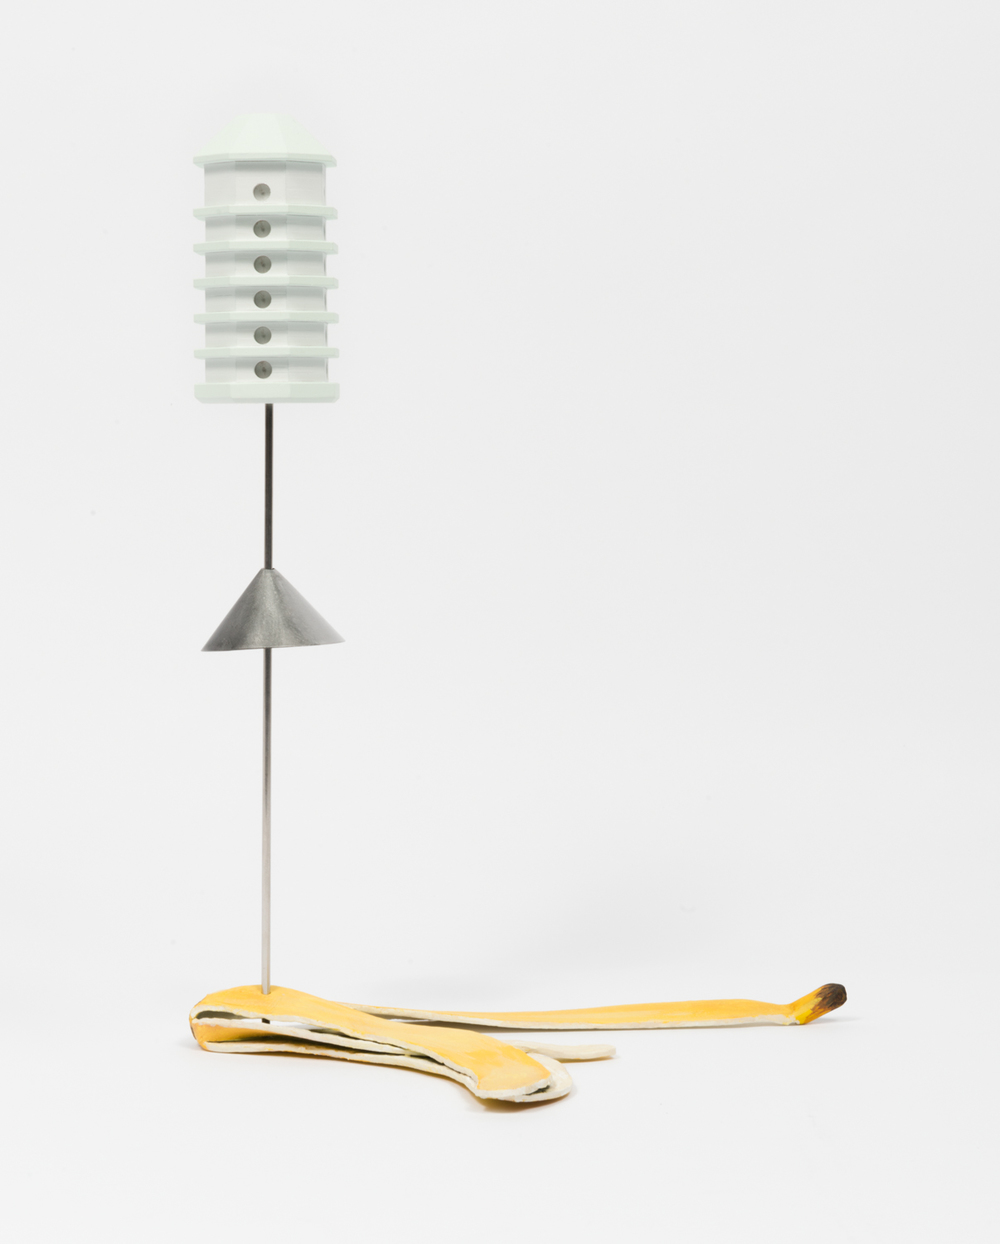 Chris Bradley Banana Peel w/ Birdhouse 2016 Steel, stainless steel, wood, acrylic paint, and hardware 13 x 10 x 6 in (33.02h x 25.4w x 15.24d cm) CB185